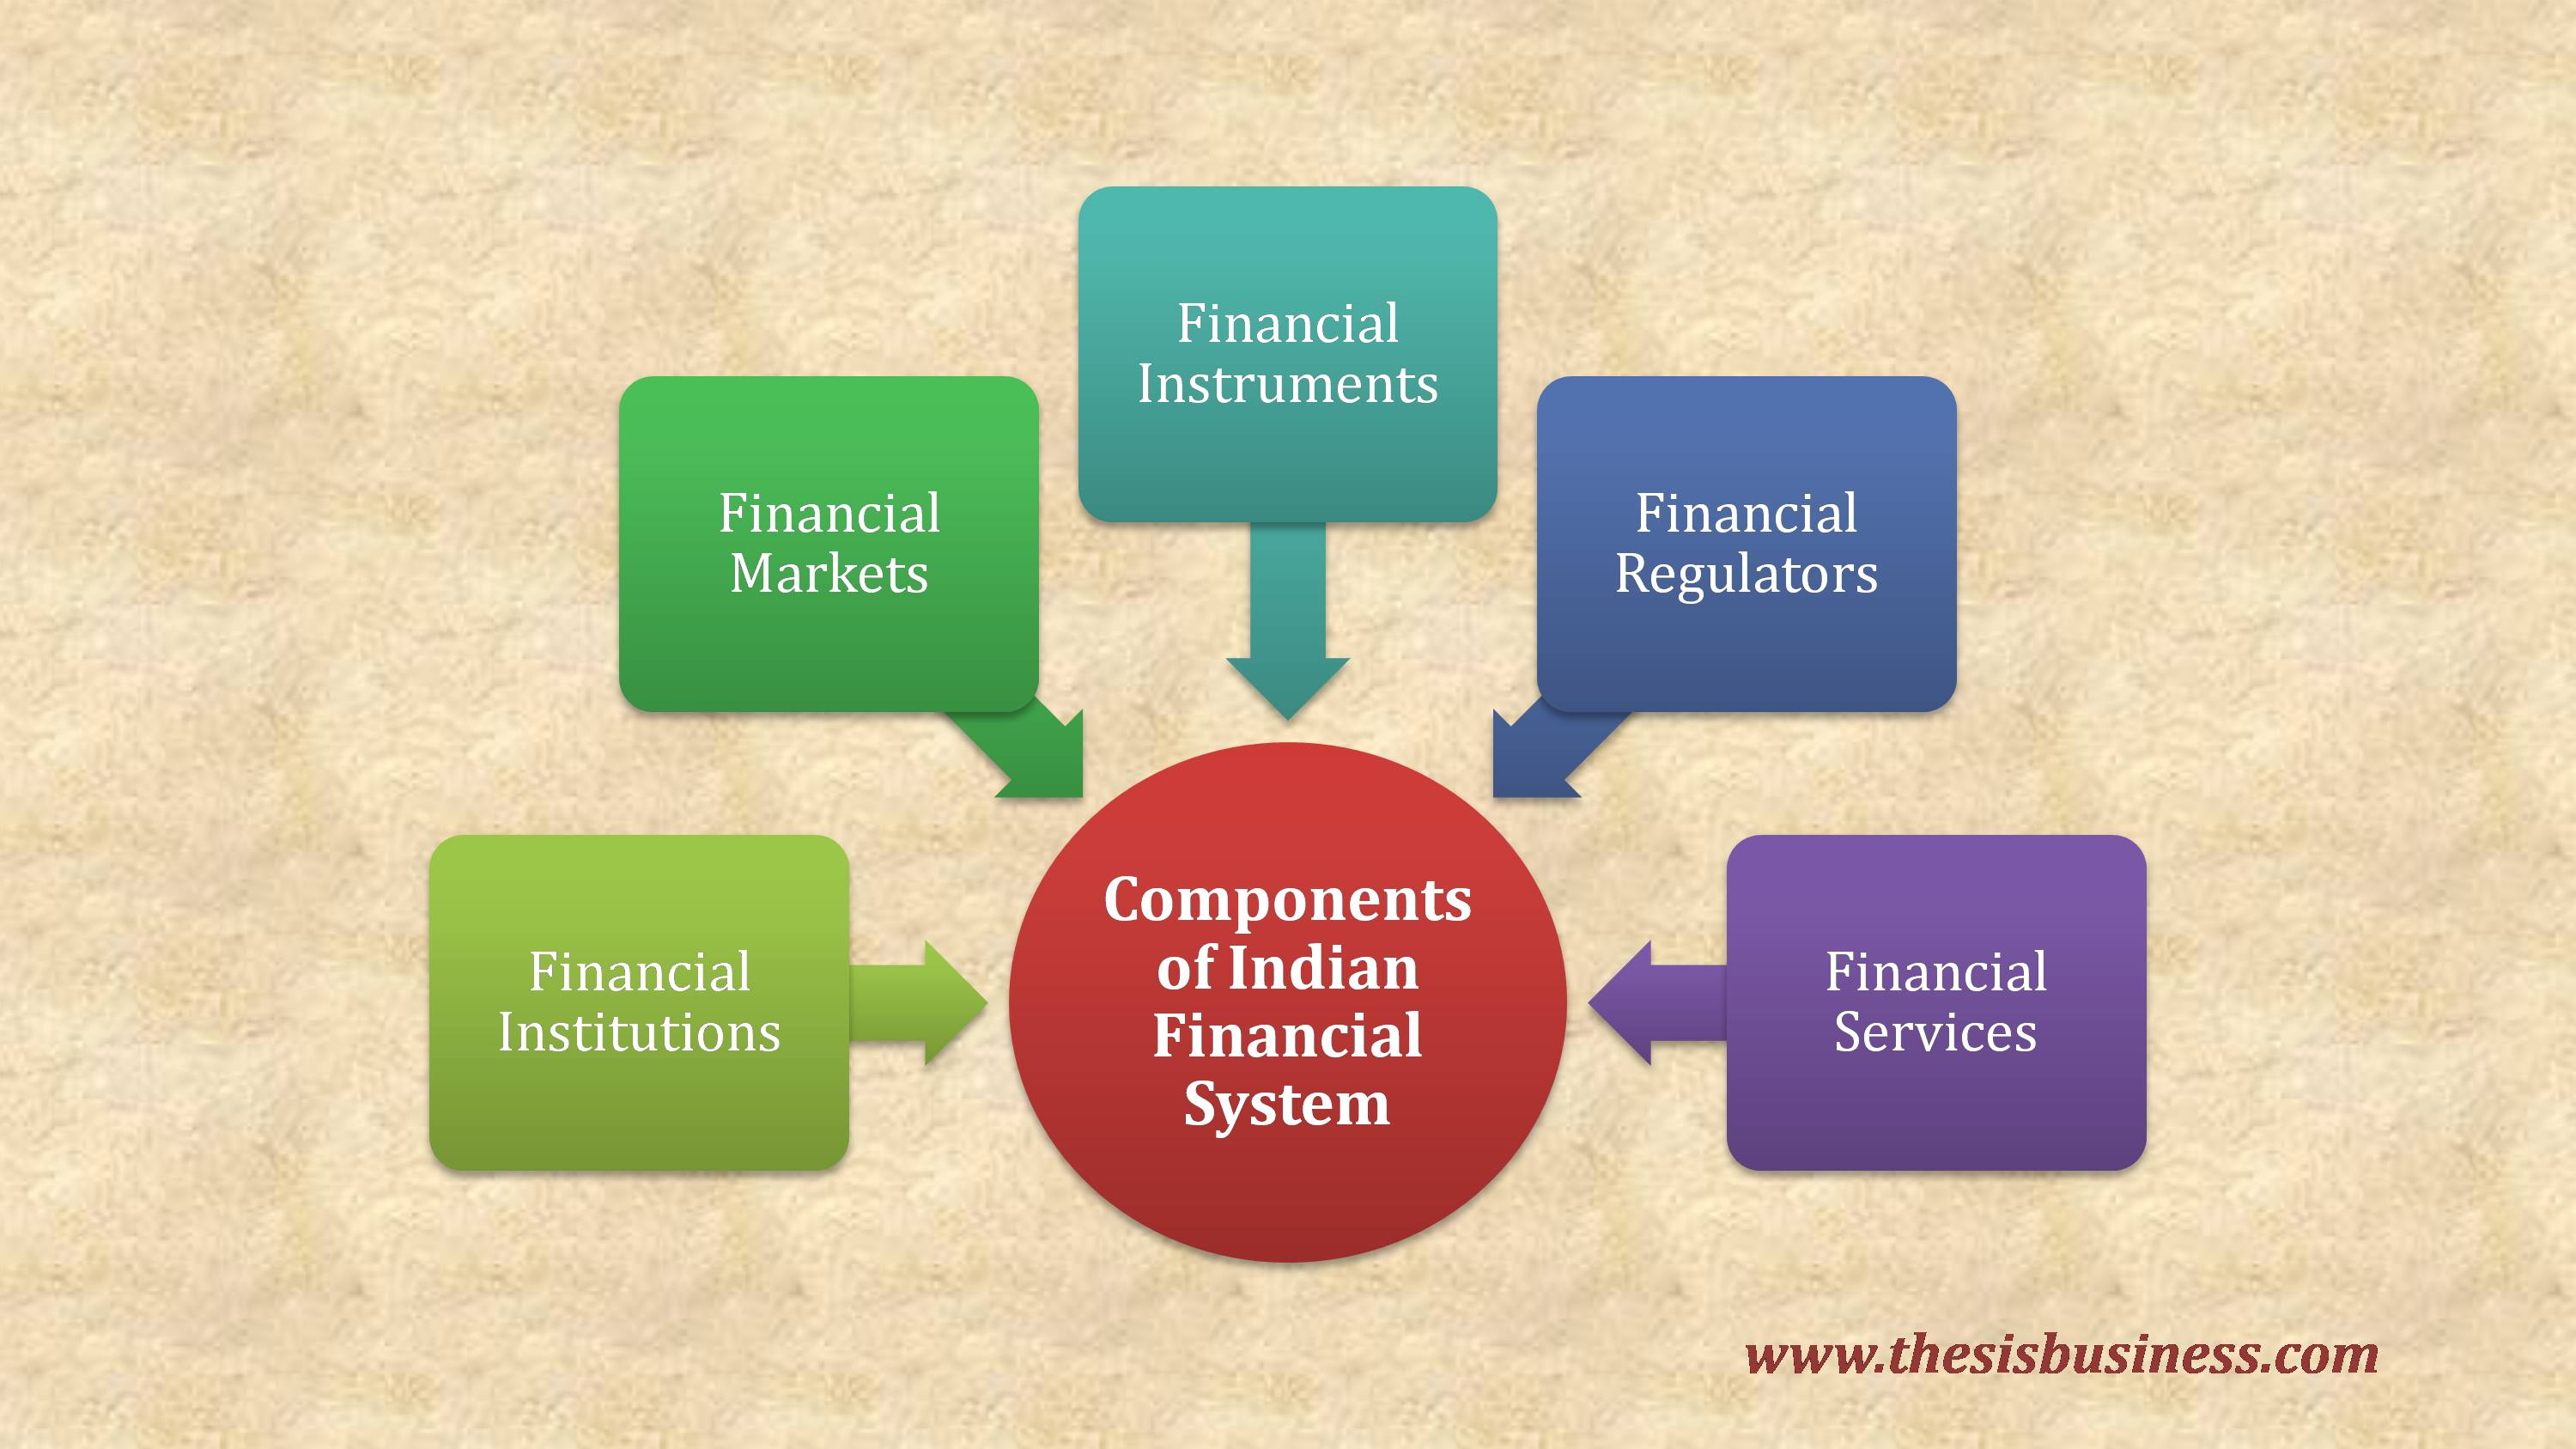 components of indian financial system